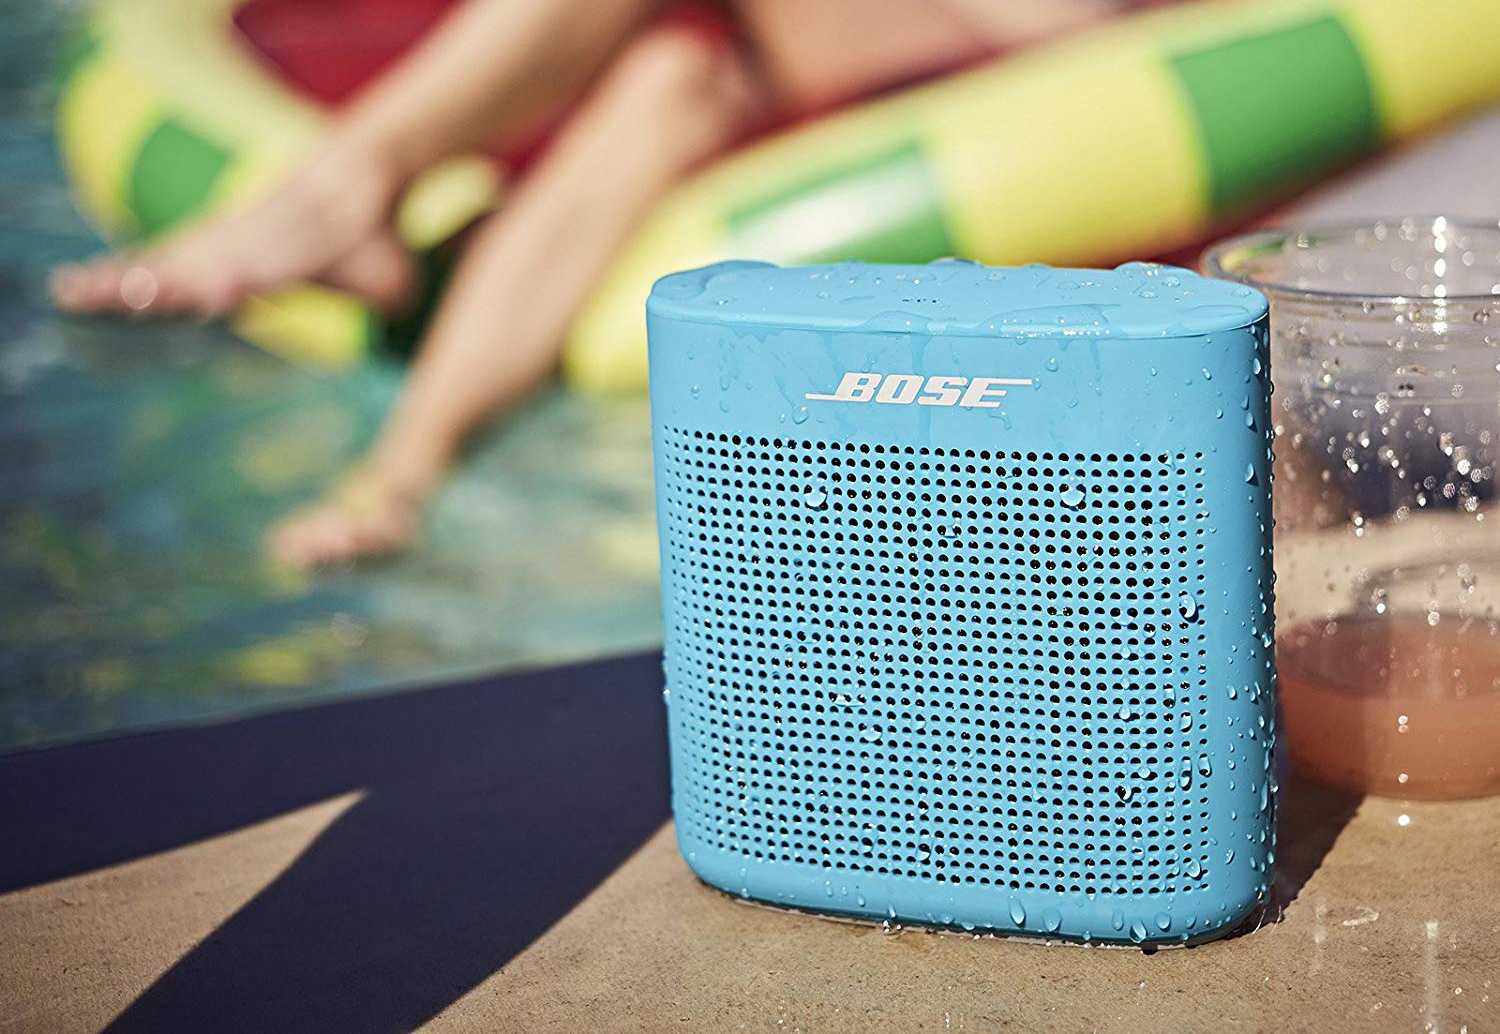 Amazon has 9 Bose speaker deals that are still shipping right away